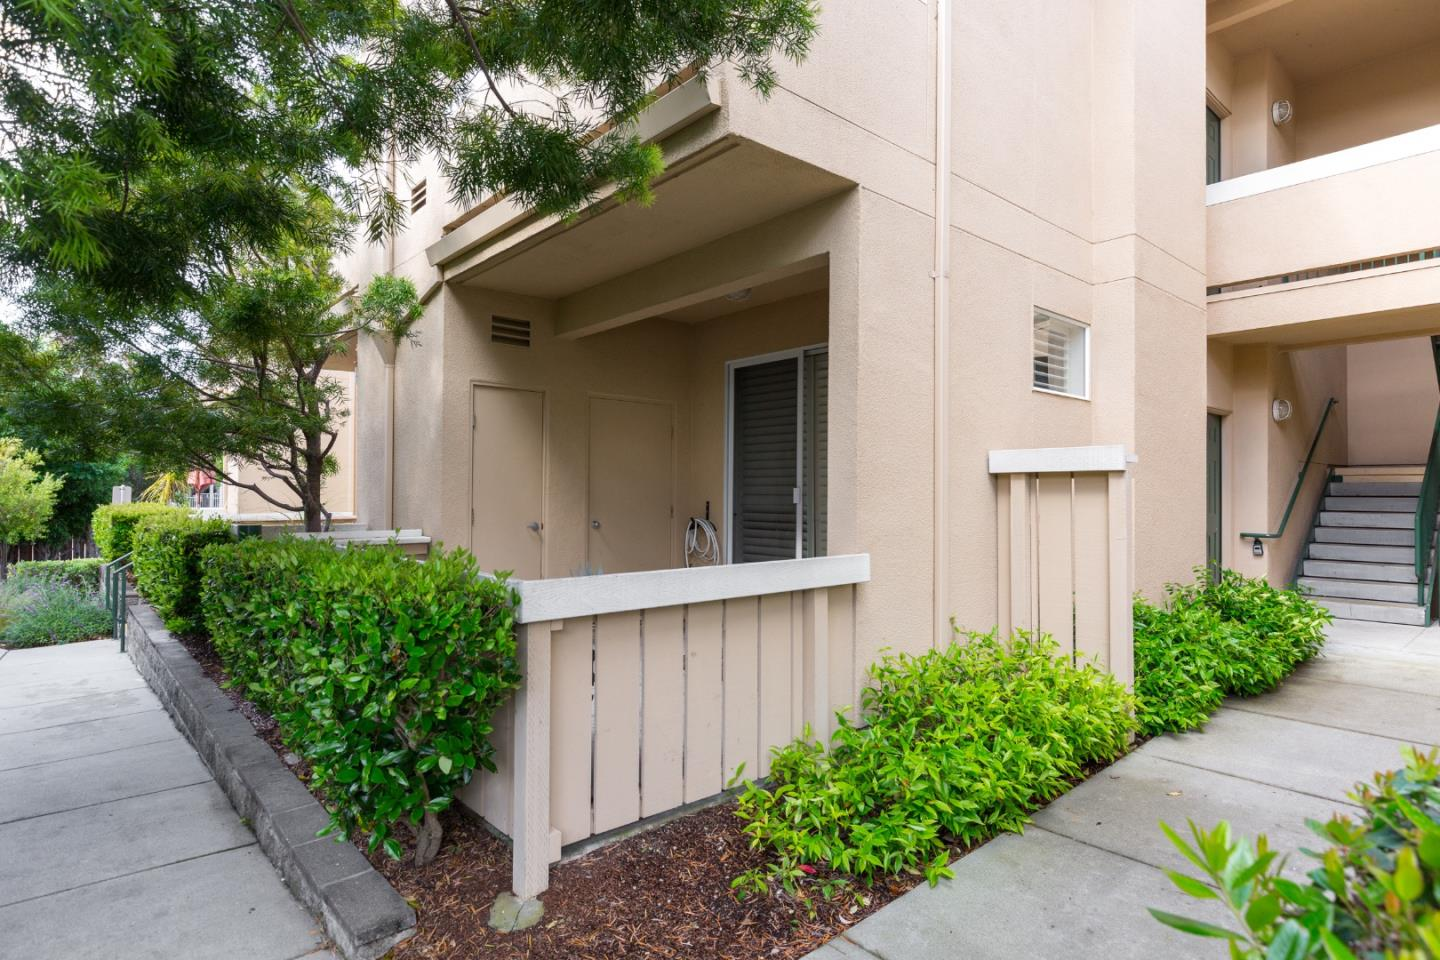 Gourgeous 2/2 townhouse in the wonderful gated community of Mariner's Cove near Depot Park. Convenient commute location in the heart of Downtown Santa Cruz allows for easy access to the beach, restaurants, the Boardwalk, and bus lines. Enjoy the good life with your own gourmet kitchen (with Wolf stove!), gas fireplace, and patio overlooking the poolside. #DREAMBIG